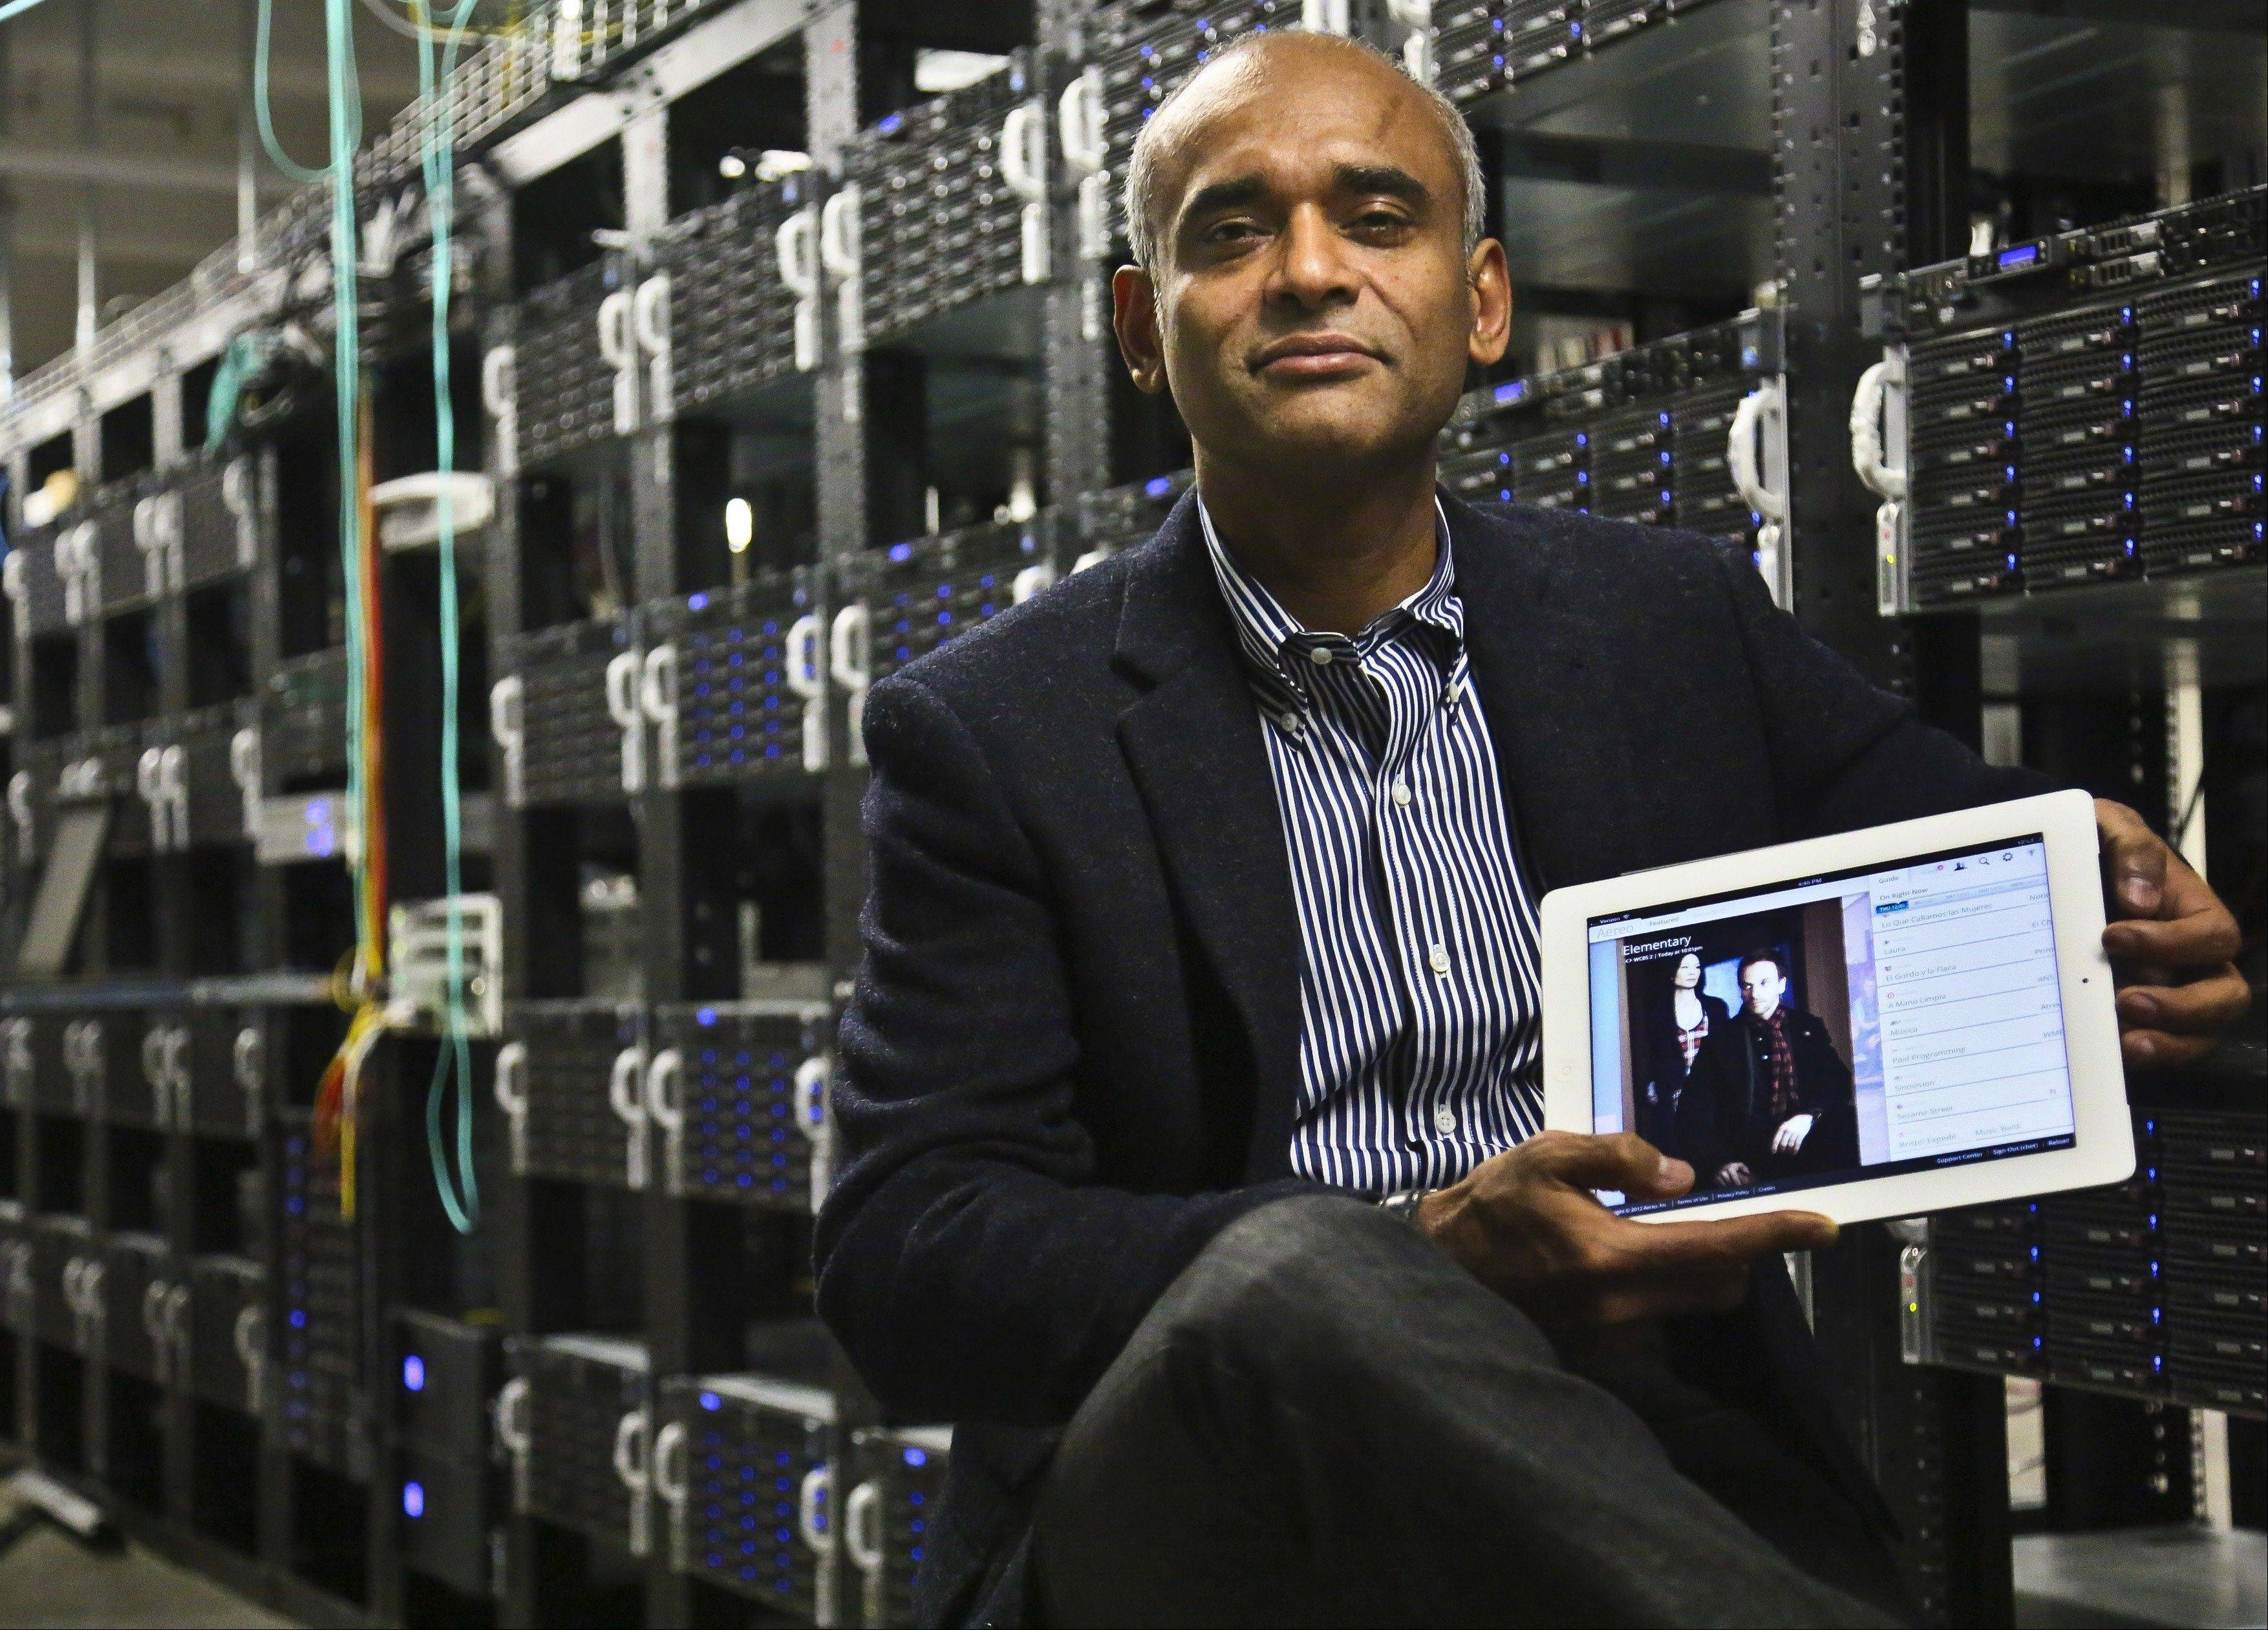 Chet Kanojia, founder and CEO of Aereo, Inc., shows a tablet displaying his company's technology, in New York. Aereo is one of several startups created to deliver traditional media over the Internet without licensing agreements.